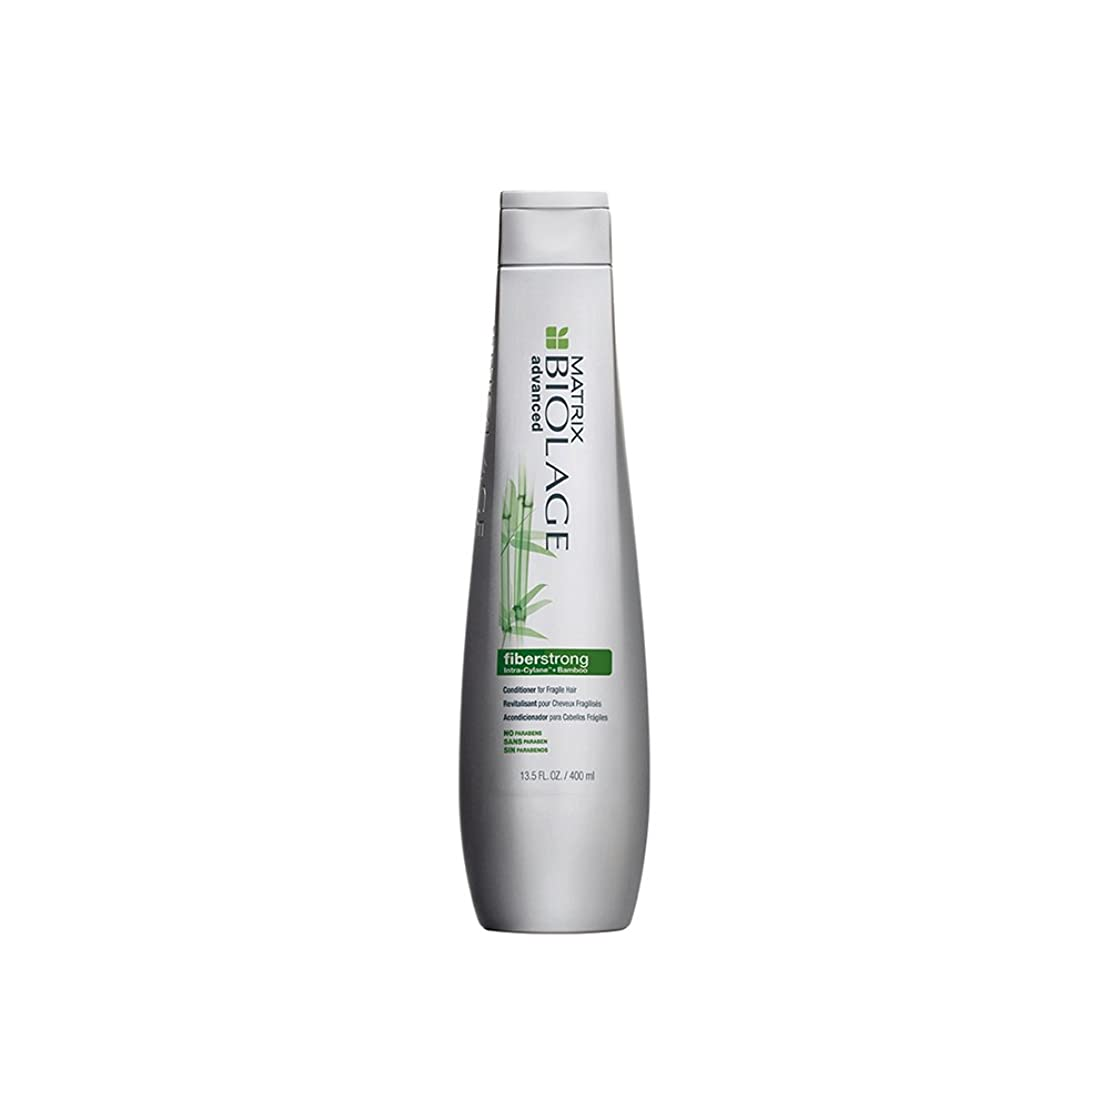 参加者決済頼むマトリックス Biolage Advanced FiberStrong Conditioner (For Fragile Hair) 1732272 400ml [海外直送品]